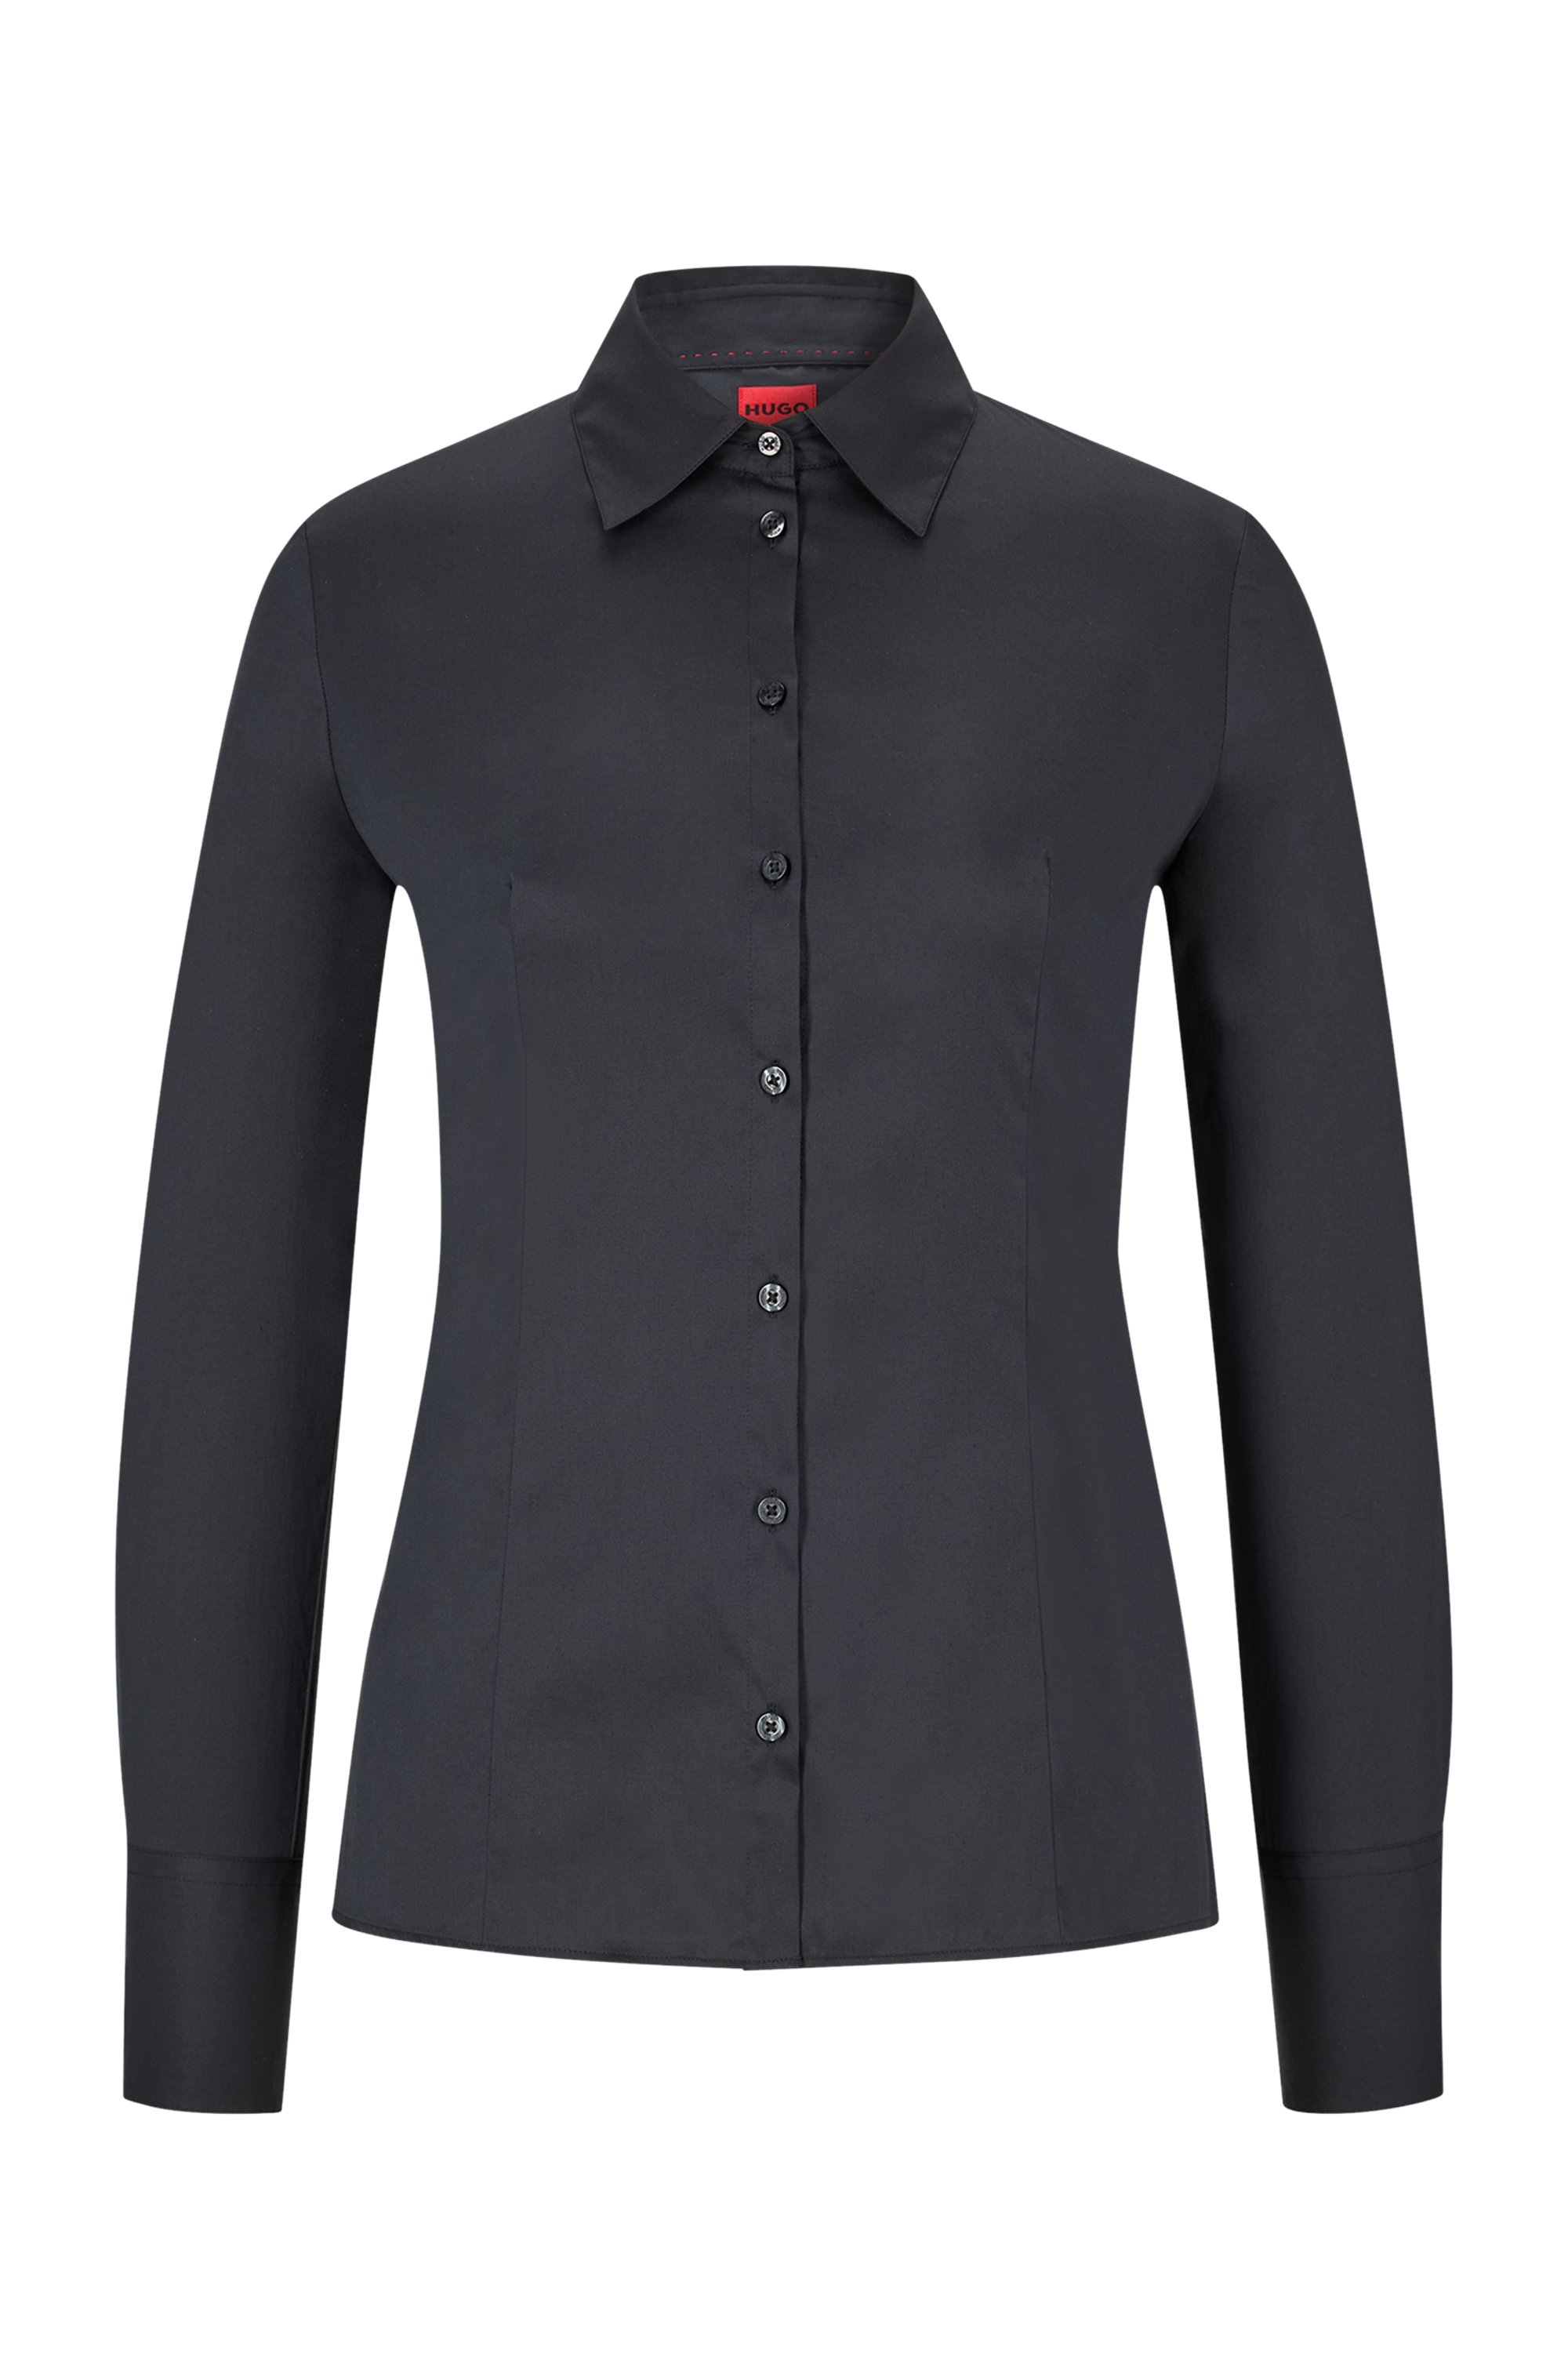 Slim-fit blouse in easy-iron poplin, Black